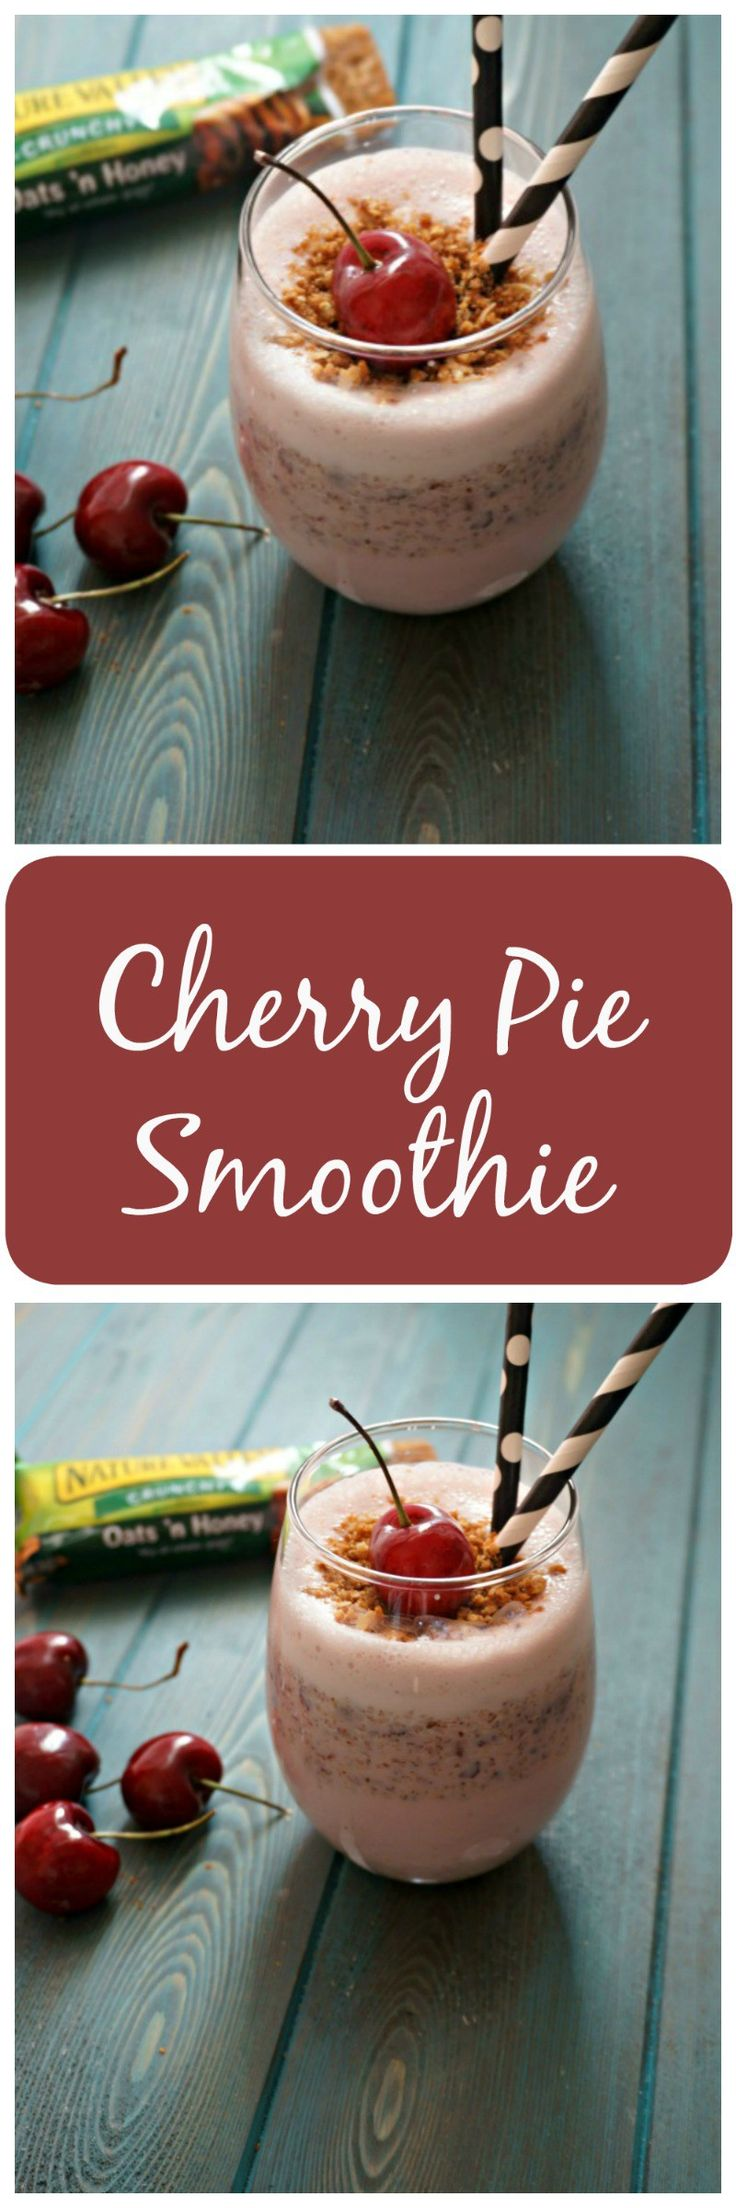 """Cherry Pie Smoothie: All the flavors of a cherry pie in smoothie form complete with a crust """"crumble"""". #BeGreatOutThere #IC #AD @NatureValley"""